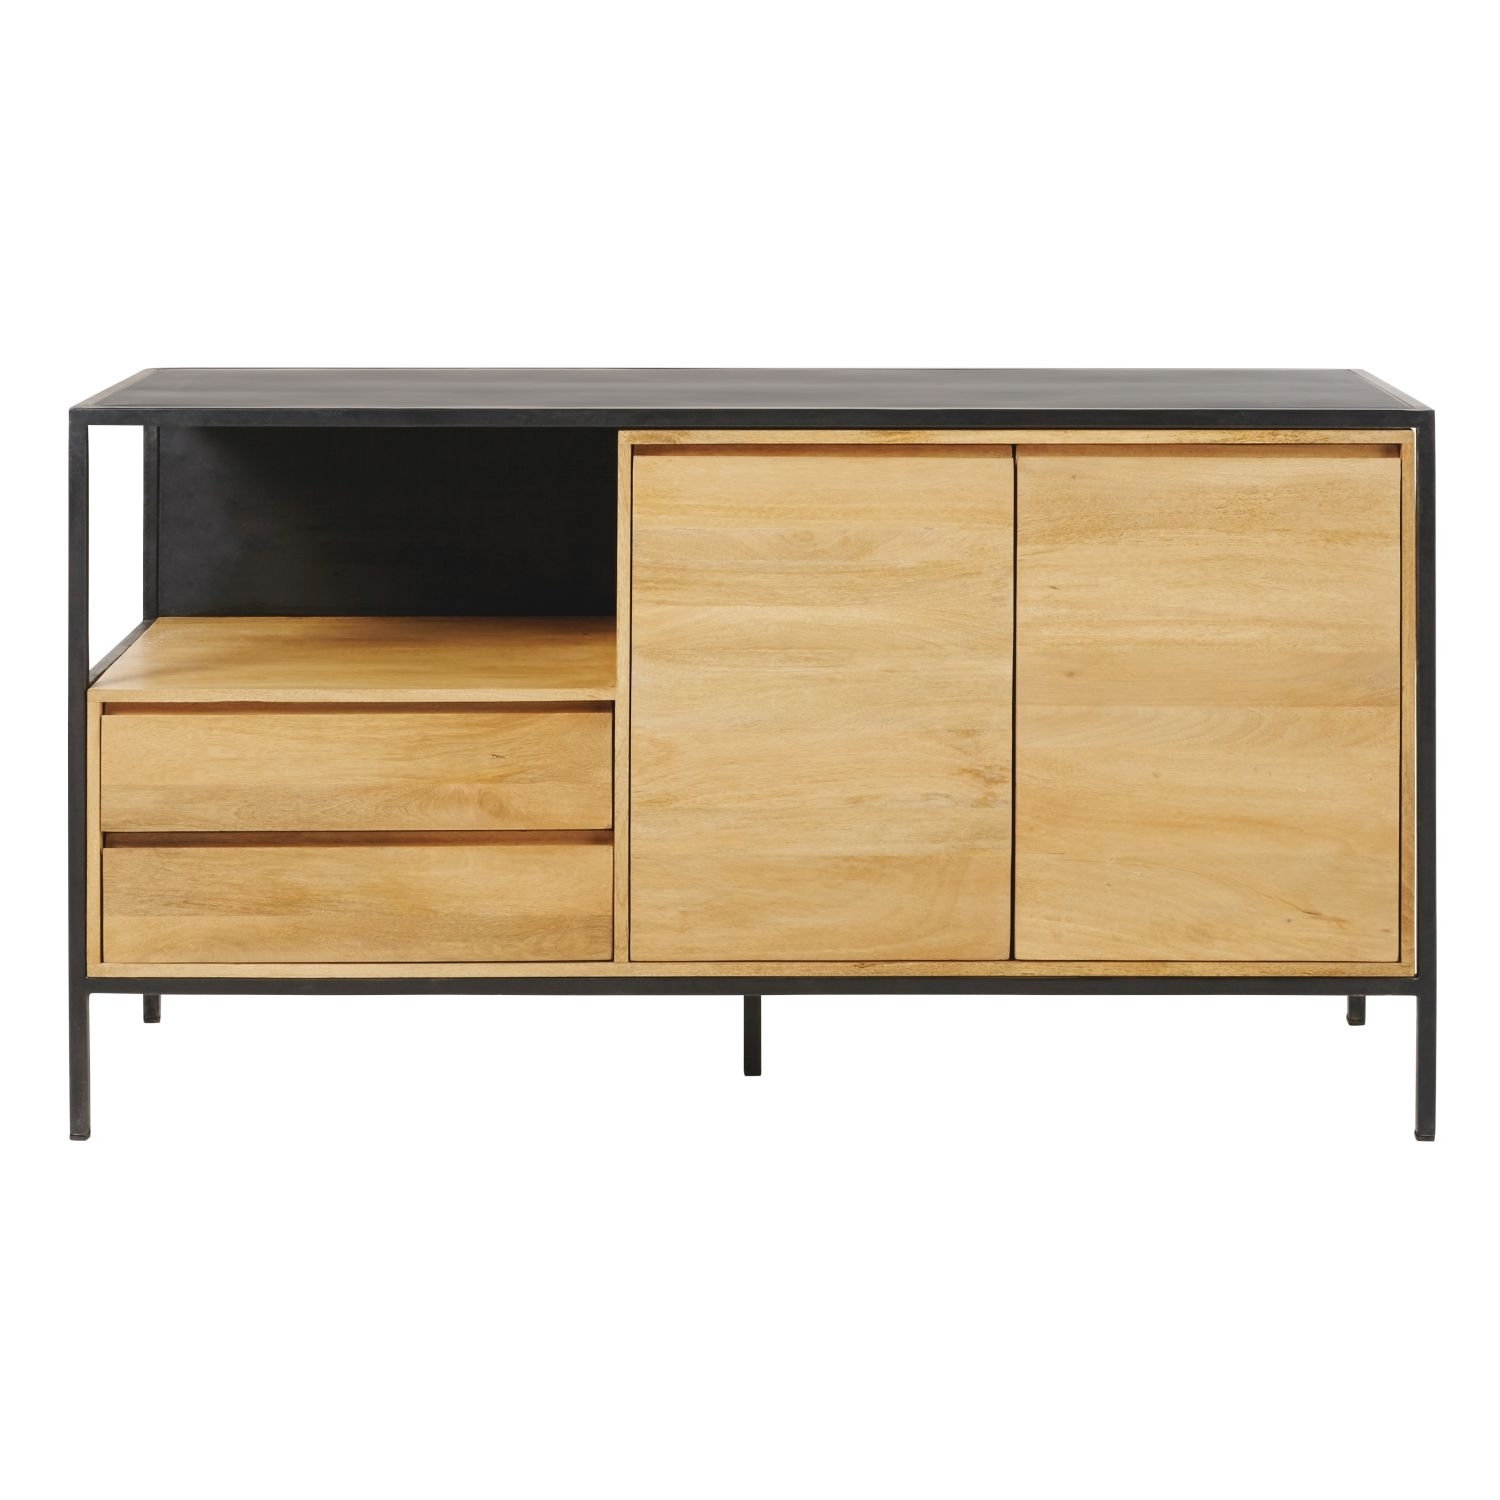 Solid Mango Wood And Black Metal 2-Door 2-Drawer Sideboard | Maisons with regard to Mango Wood 2-Door/2-Drawer Sideboards (Image 27 of 30)